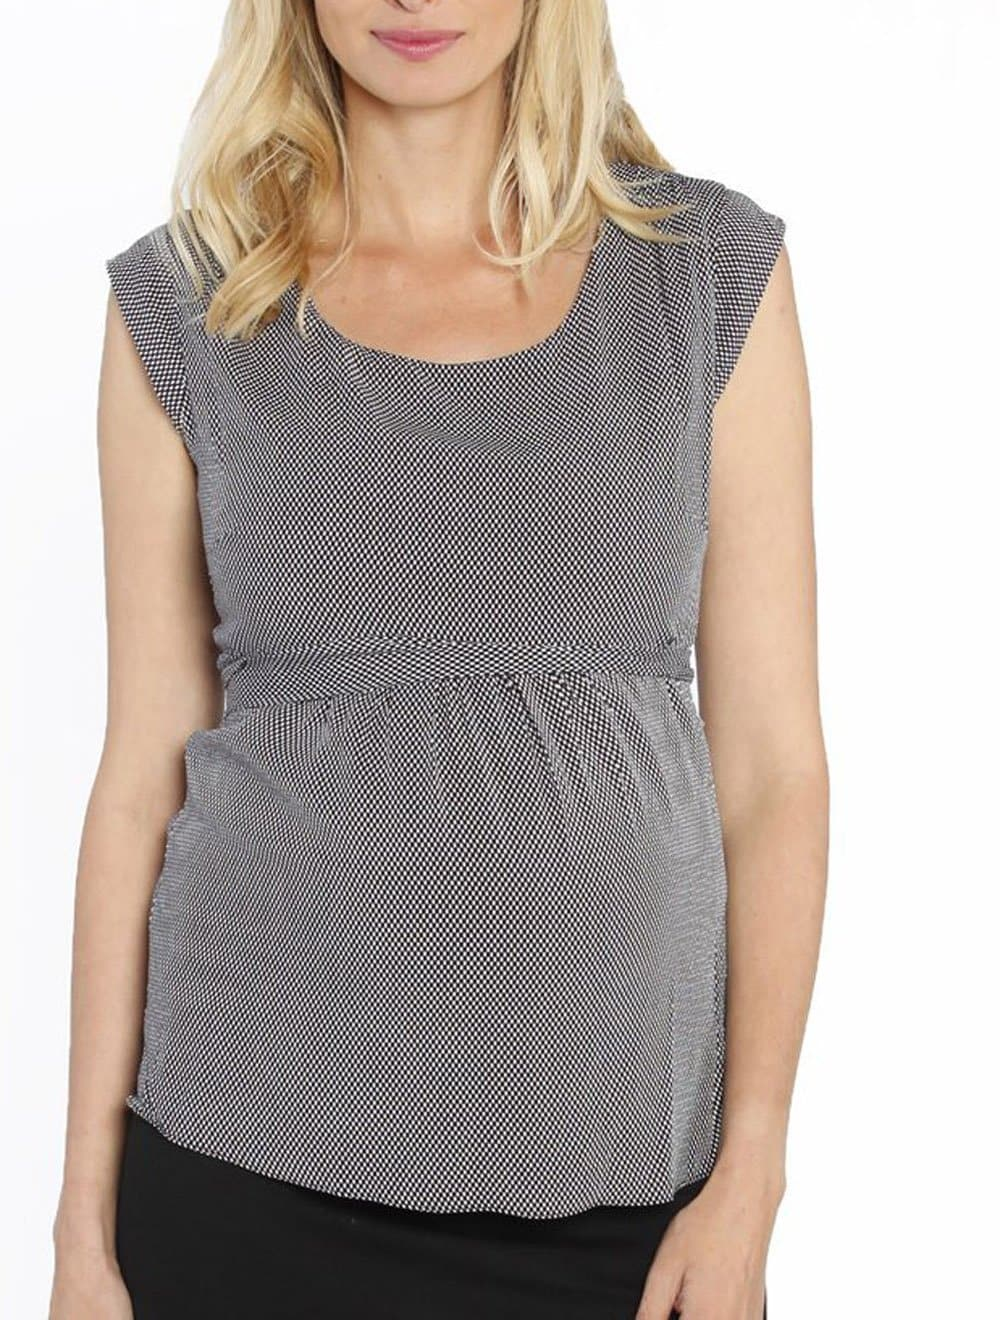 Maternity Tie Back Dressy Top with Back Zipper - Checker Print - Angel Maternity - Maternity clothes - shop online